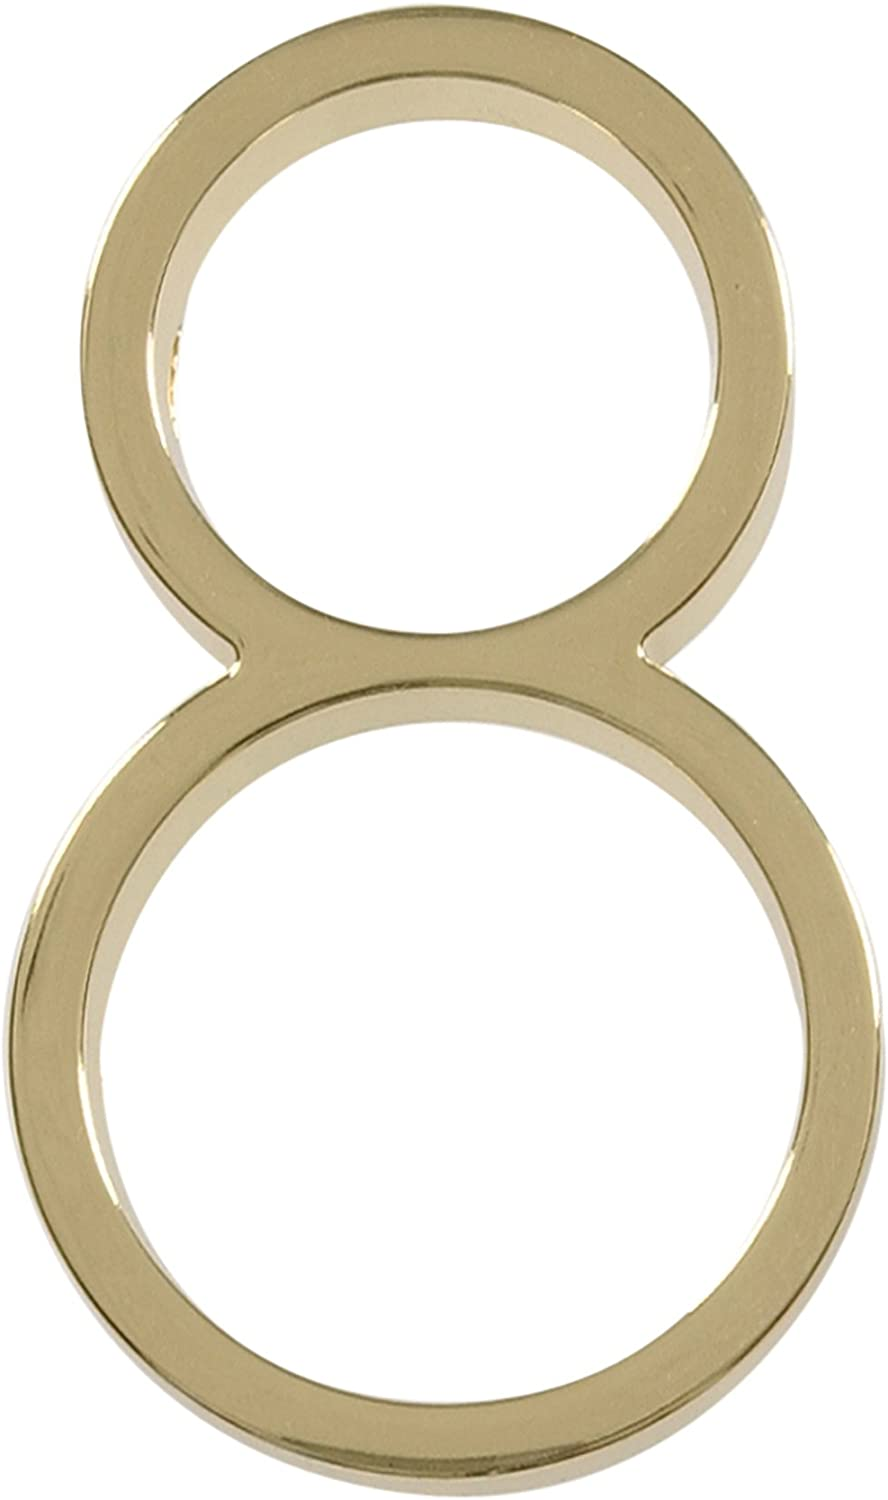 Distinctions by Hillman 843208 5-Inch Floating Mount House Polished Brass, Number 8